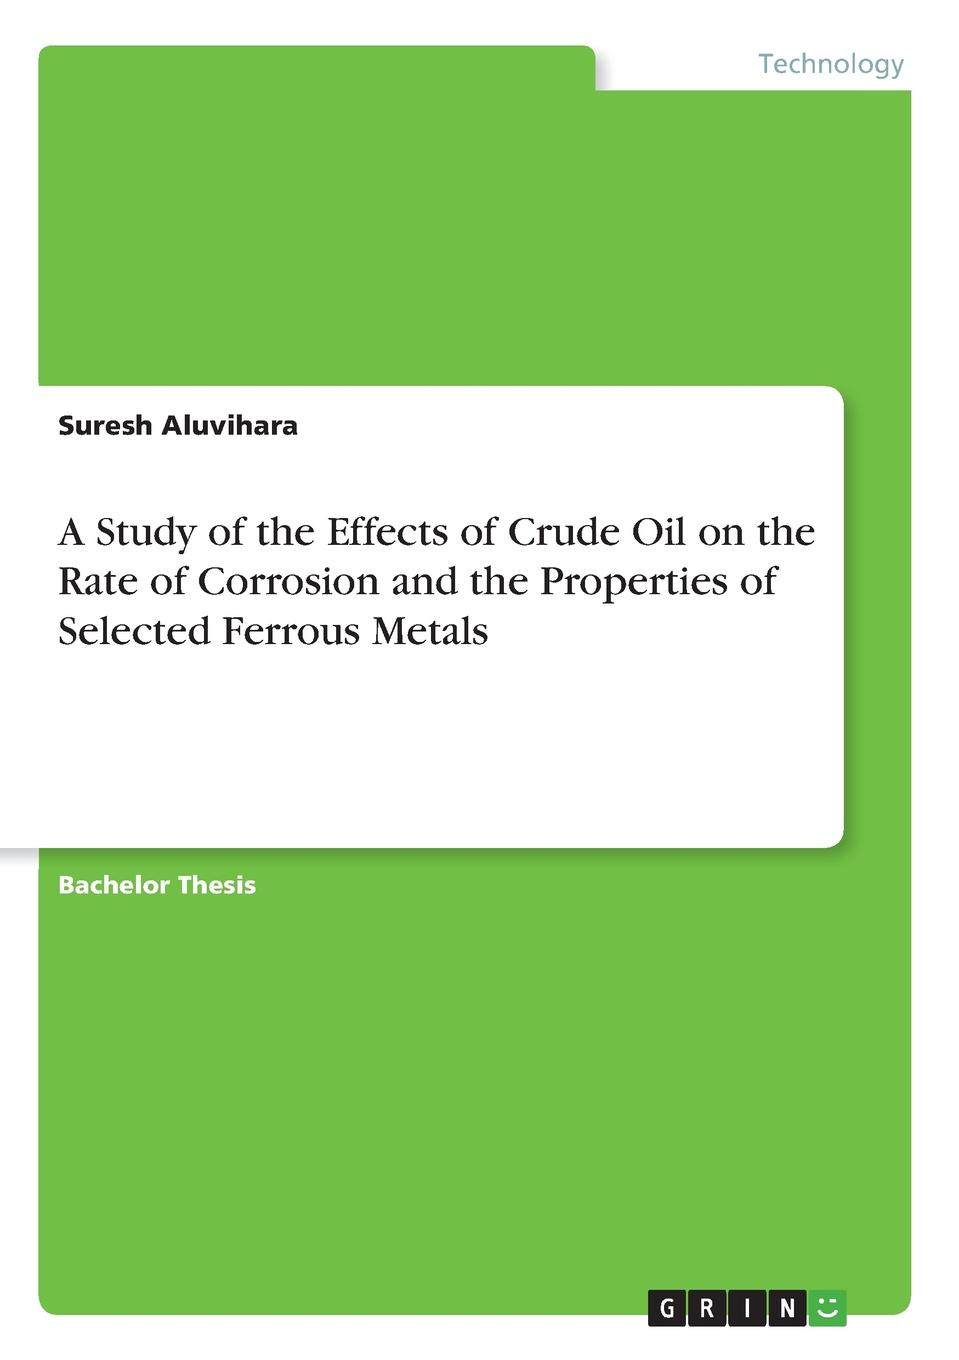 Suresh Aluvihara A Study of the Effects of Crude Oil on the Rate of Corrosion and the Properties of Selected Ferrous Metals downs anthony j the group 13 metals aluminium gallium indium and thallium chemical patterns and peculiarities